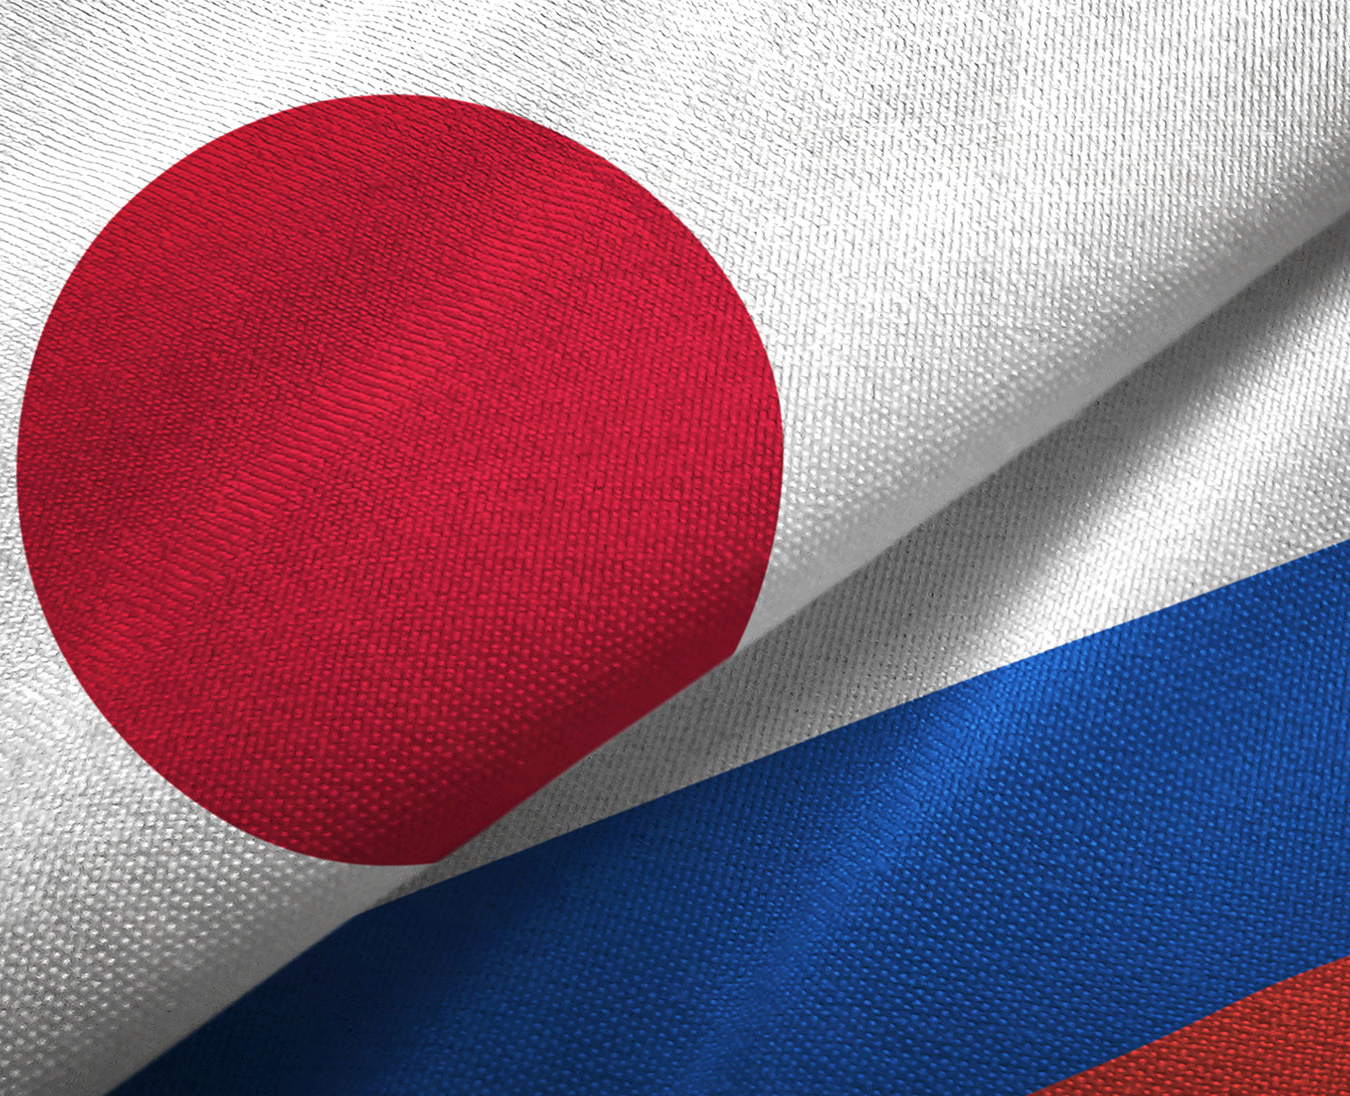 IINA: Russian Military Modernization in the Northern Territories and Its Implications for Japanese Foreign Policy